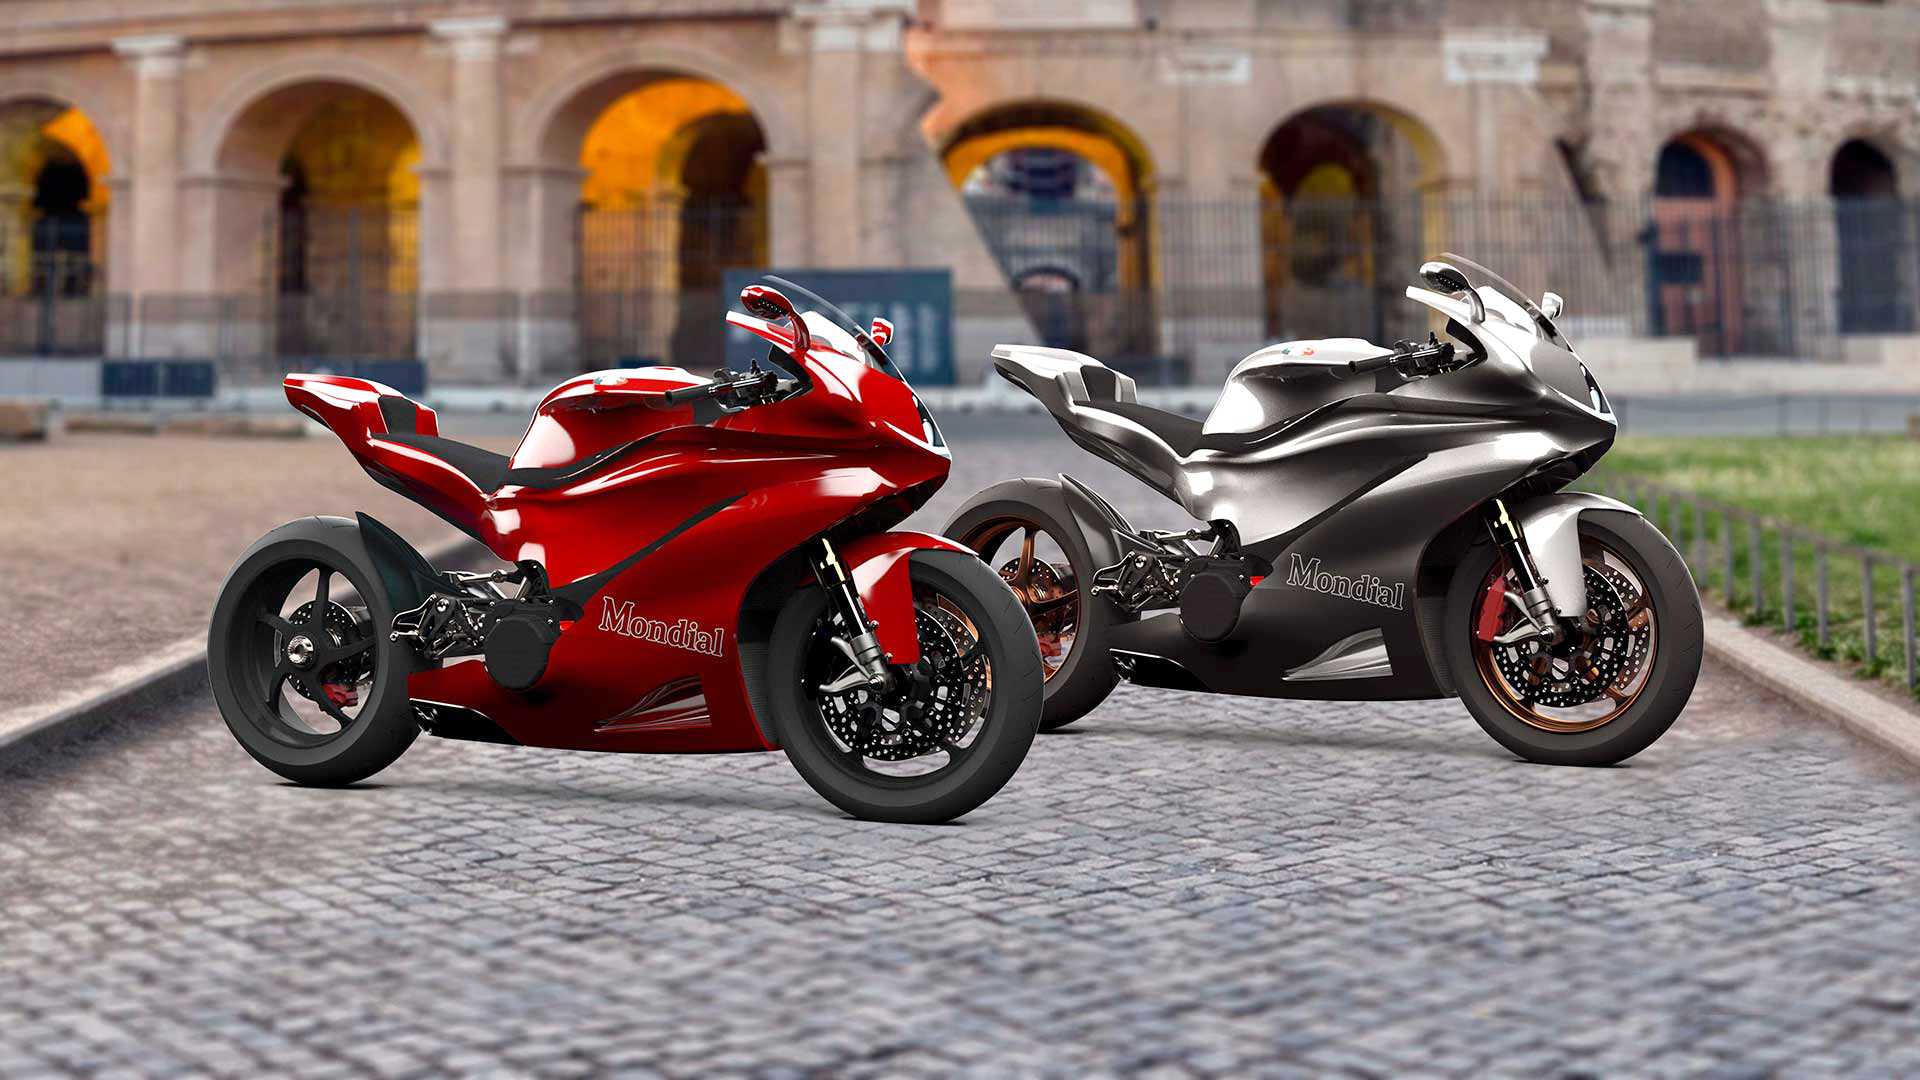 MondialMoto will make a V5 superbike with 200 hp